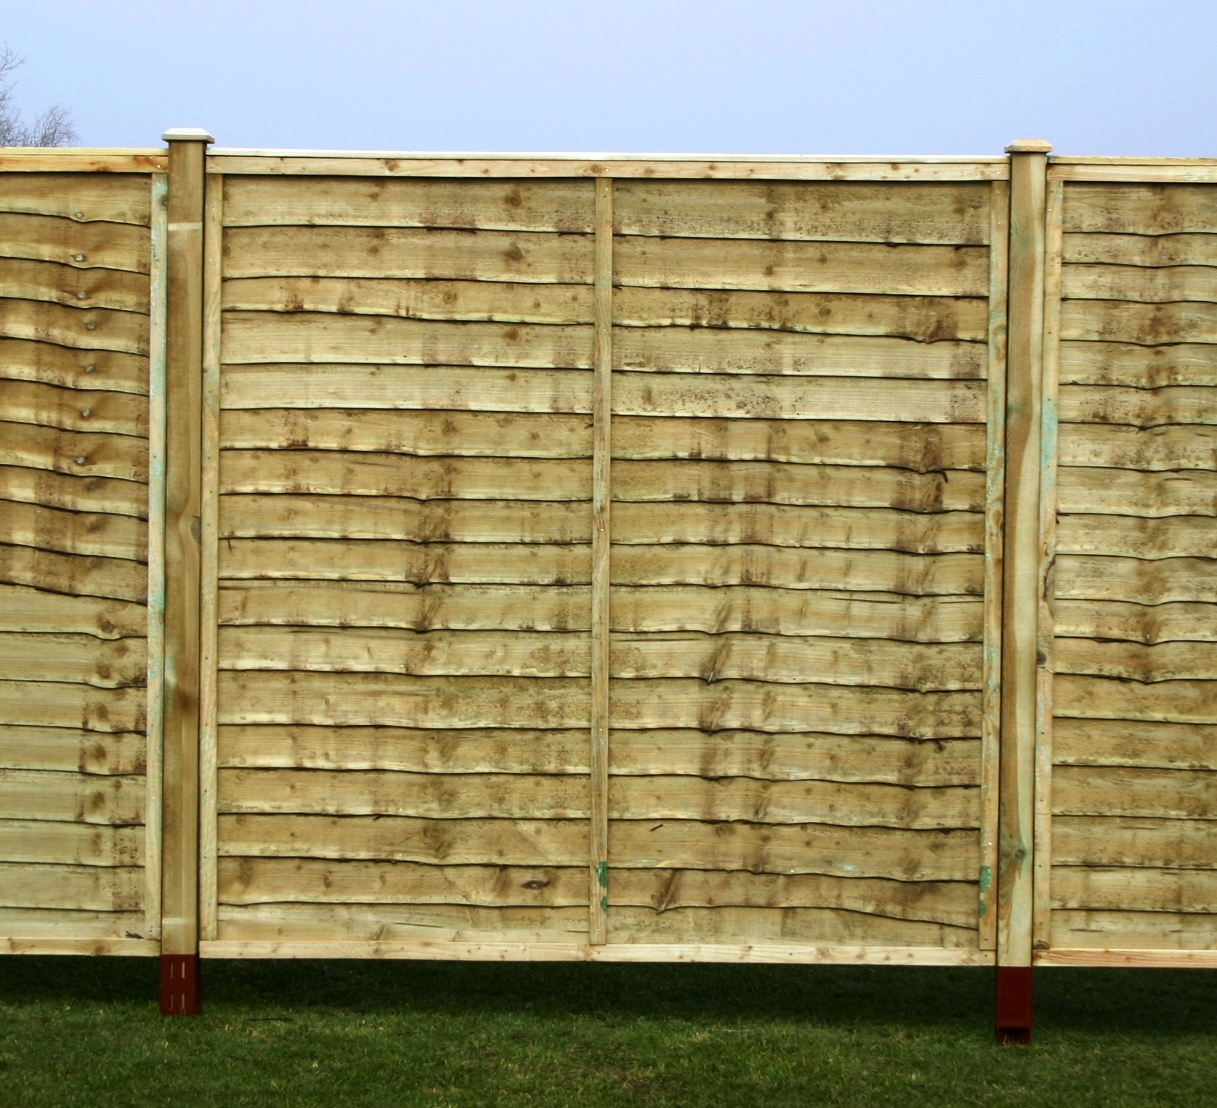 Fencing Supplies, Garden Decking U0026 Sheds Bournemouth, Christchurch,  Wimborne, Dorset, Yeovil, Somerset, Sidmouth, Devon, Totton, Southampton,  Hampshire And ...